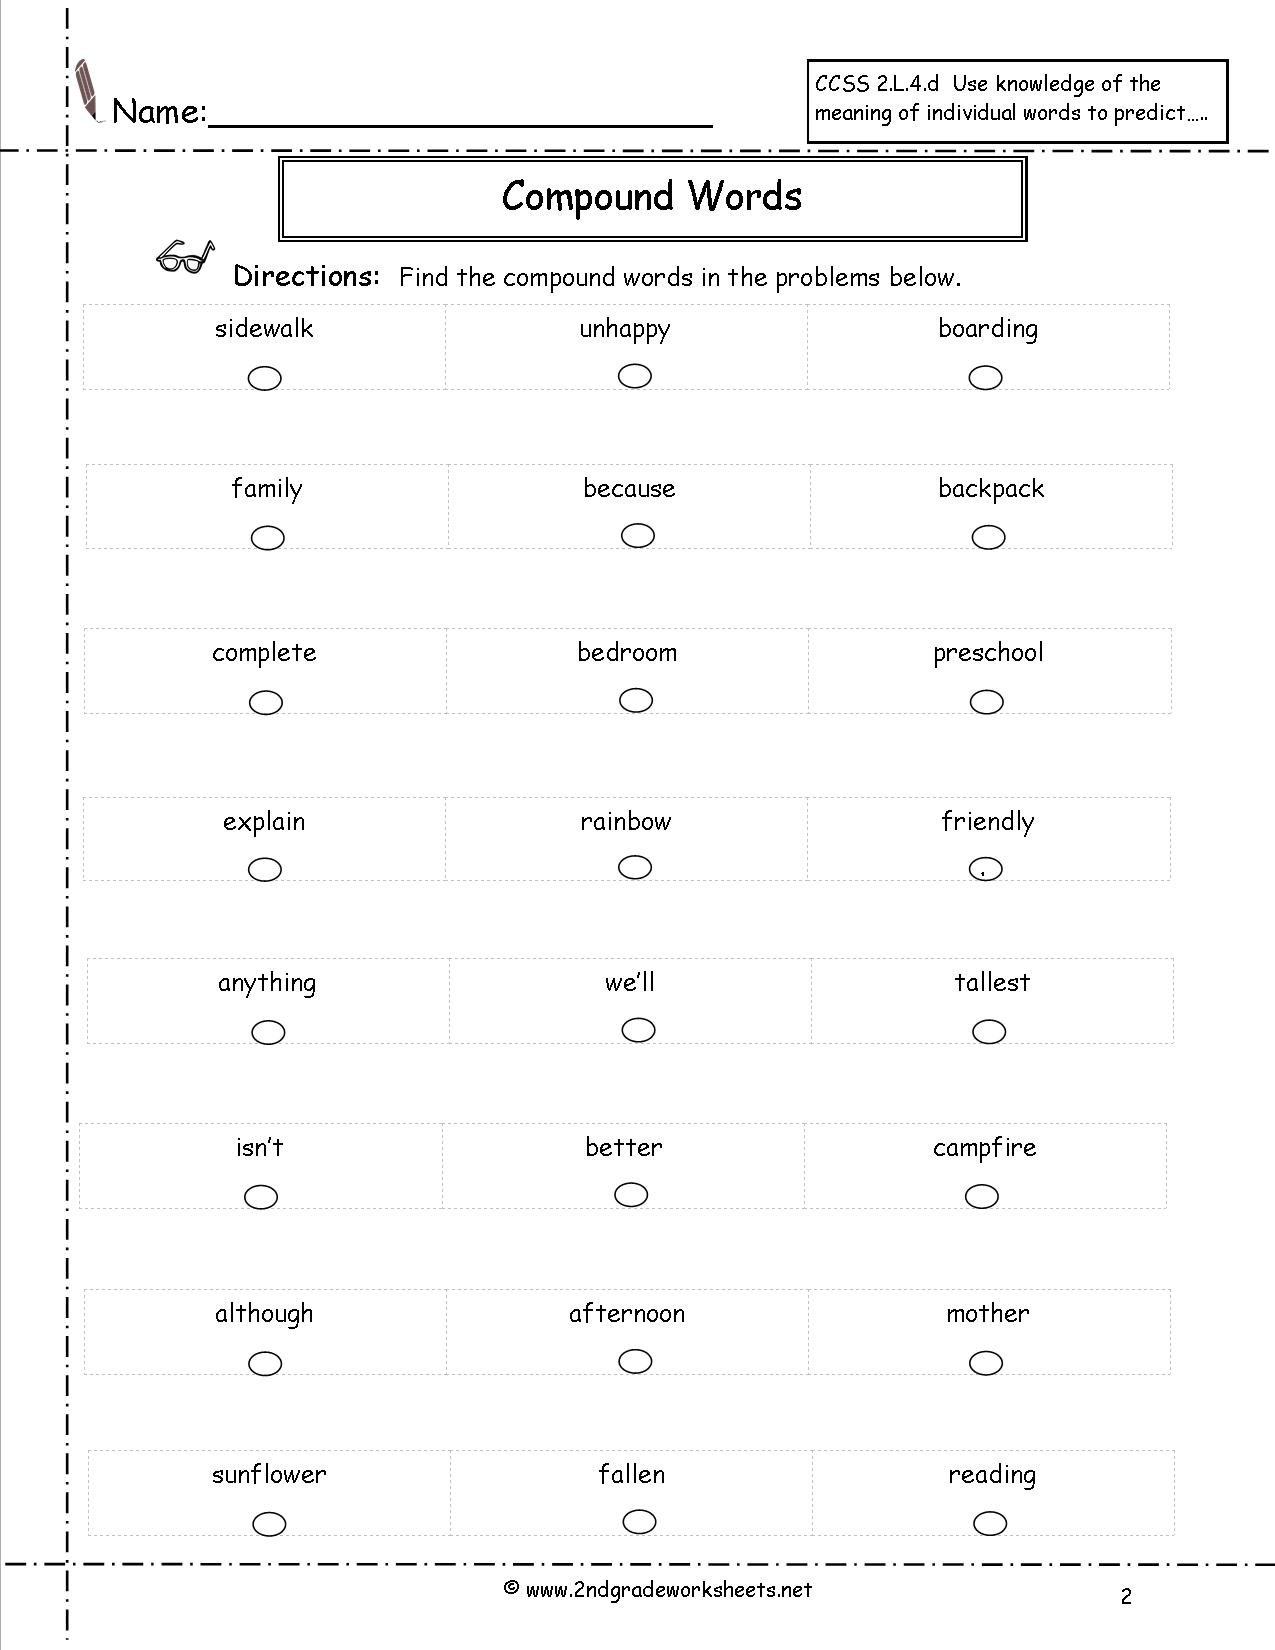 12 Best Images Of Compound Word Worksheets And Meanings